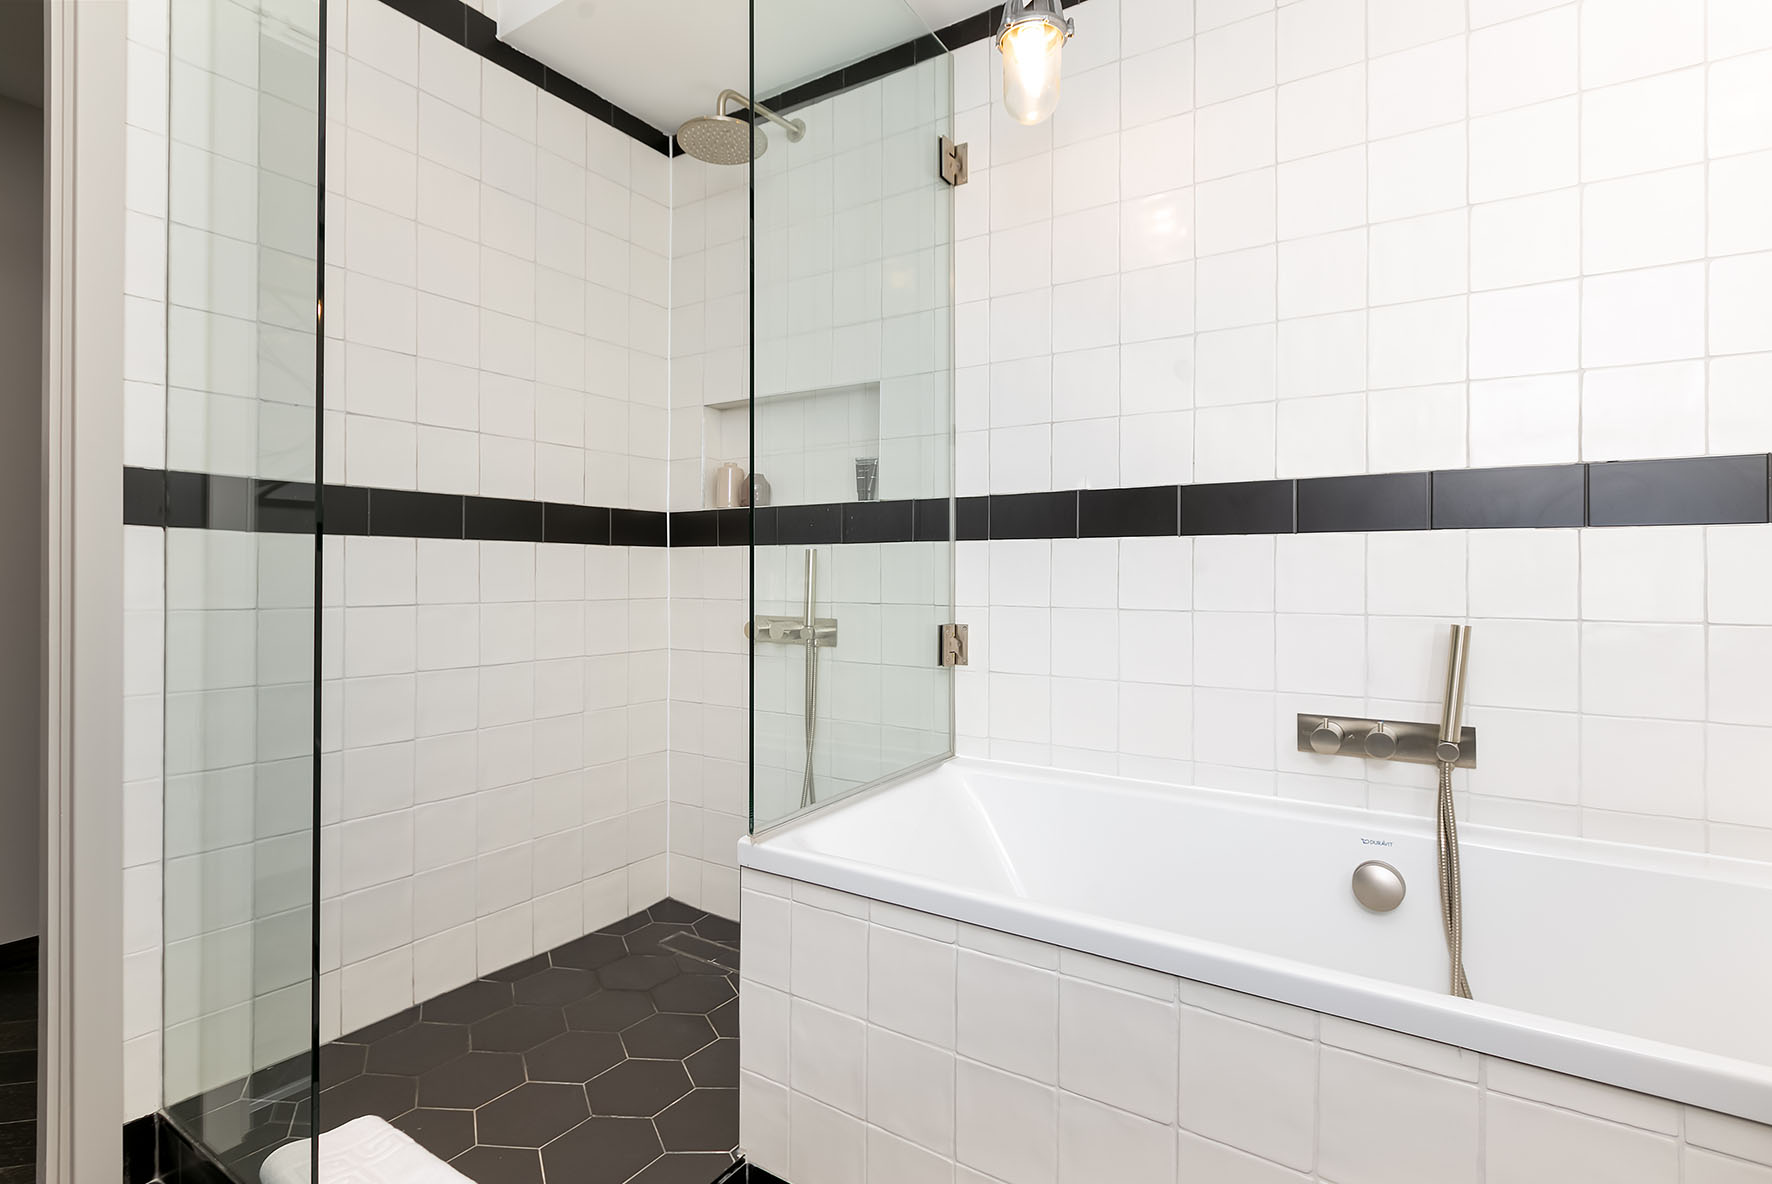 Lovelydays luxury service apartment rental - London - Soho - Berwick Street III - Lovelysuite - 1 bedrooms - 1 bathrooms - Lovely shower - Beautiful bathtub - rent apartments london - a4d35a3d4d2e - Lovelydays